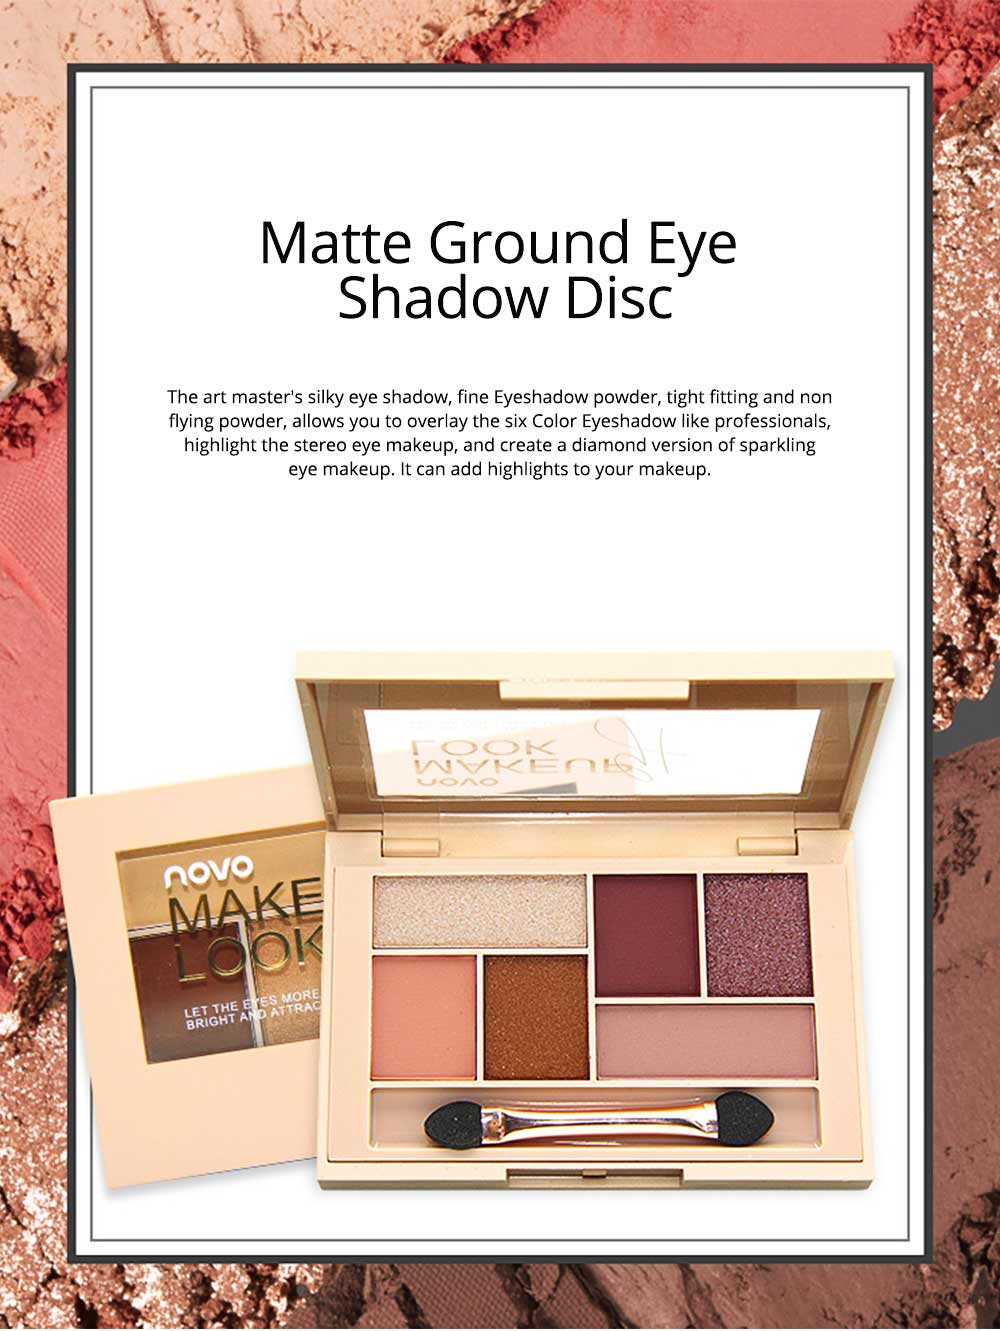 Matte Ground Eye Shadow Disc Silky Six Eyeshadow, Pearl light Matte Color Eye Shadow Disc Make-up Tool for beginners 0